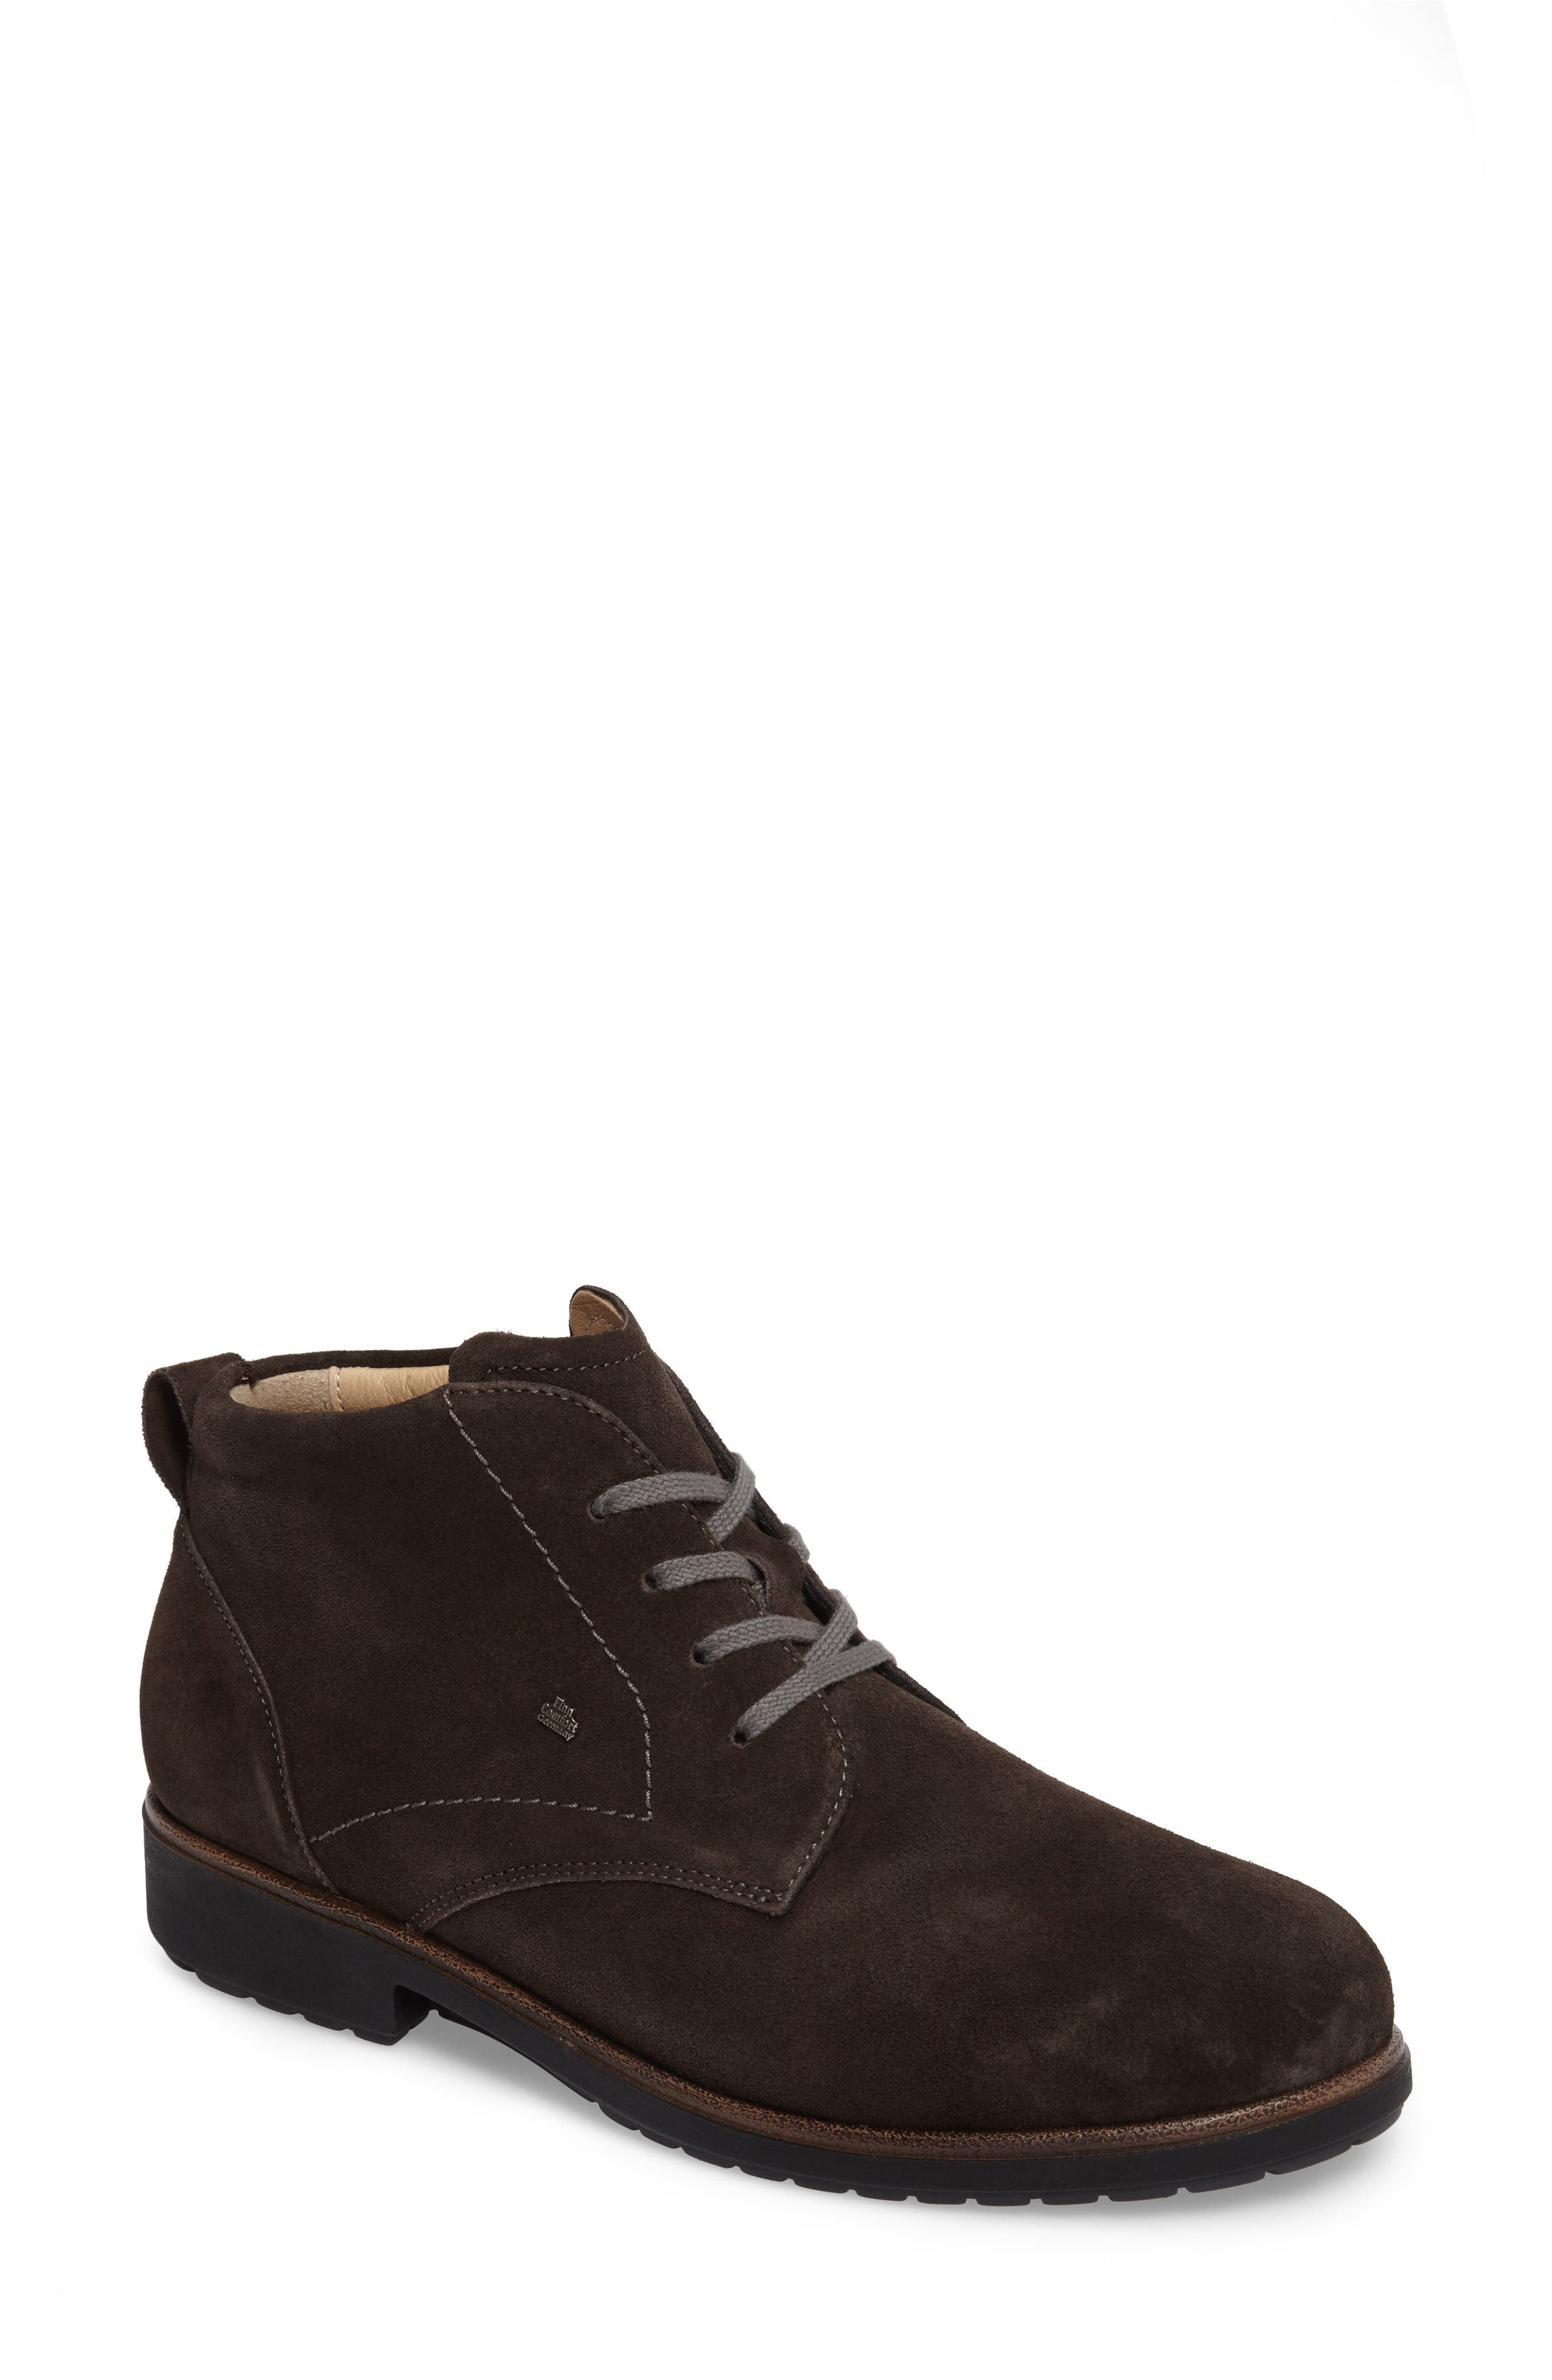 Chukka Boot,                             Main thumbnail 1, color,